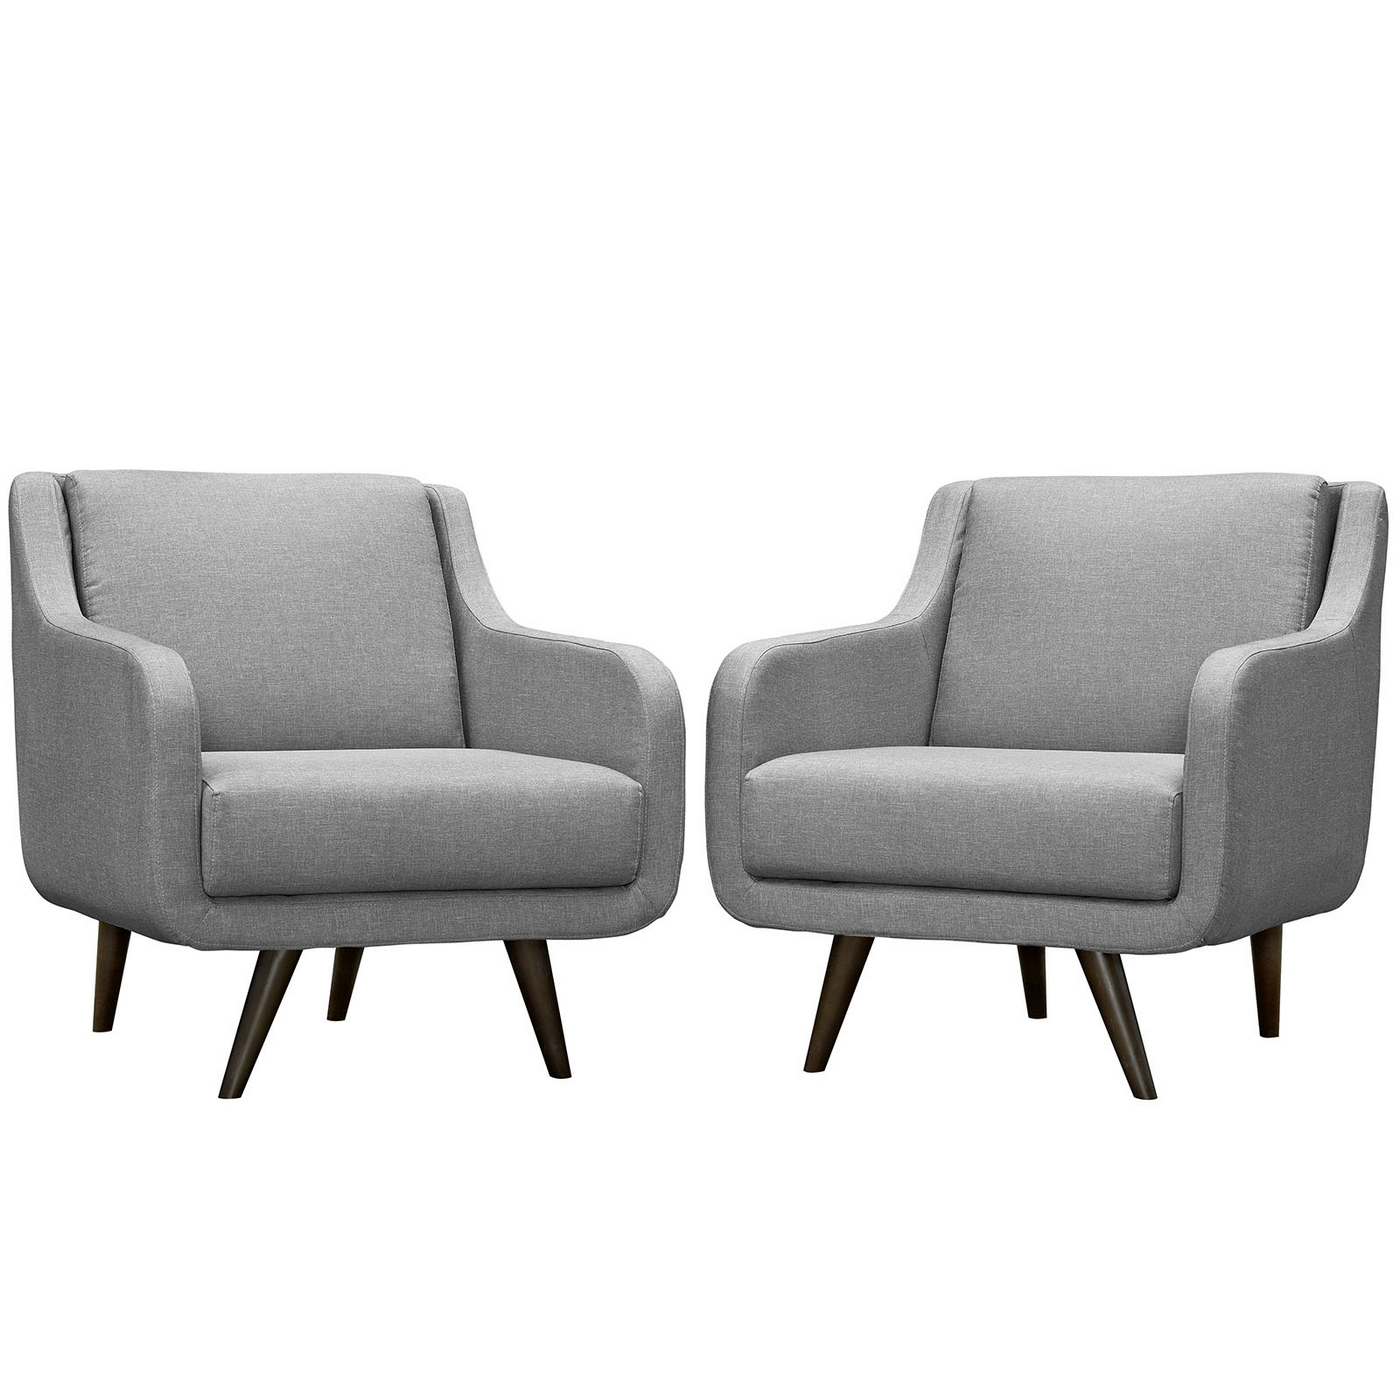 Set Of 2, Verve Mid-Century Modern Upholstered Armchairs w ...